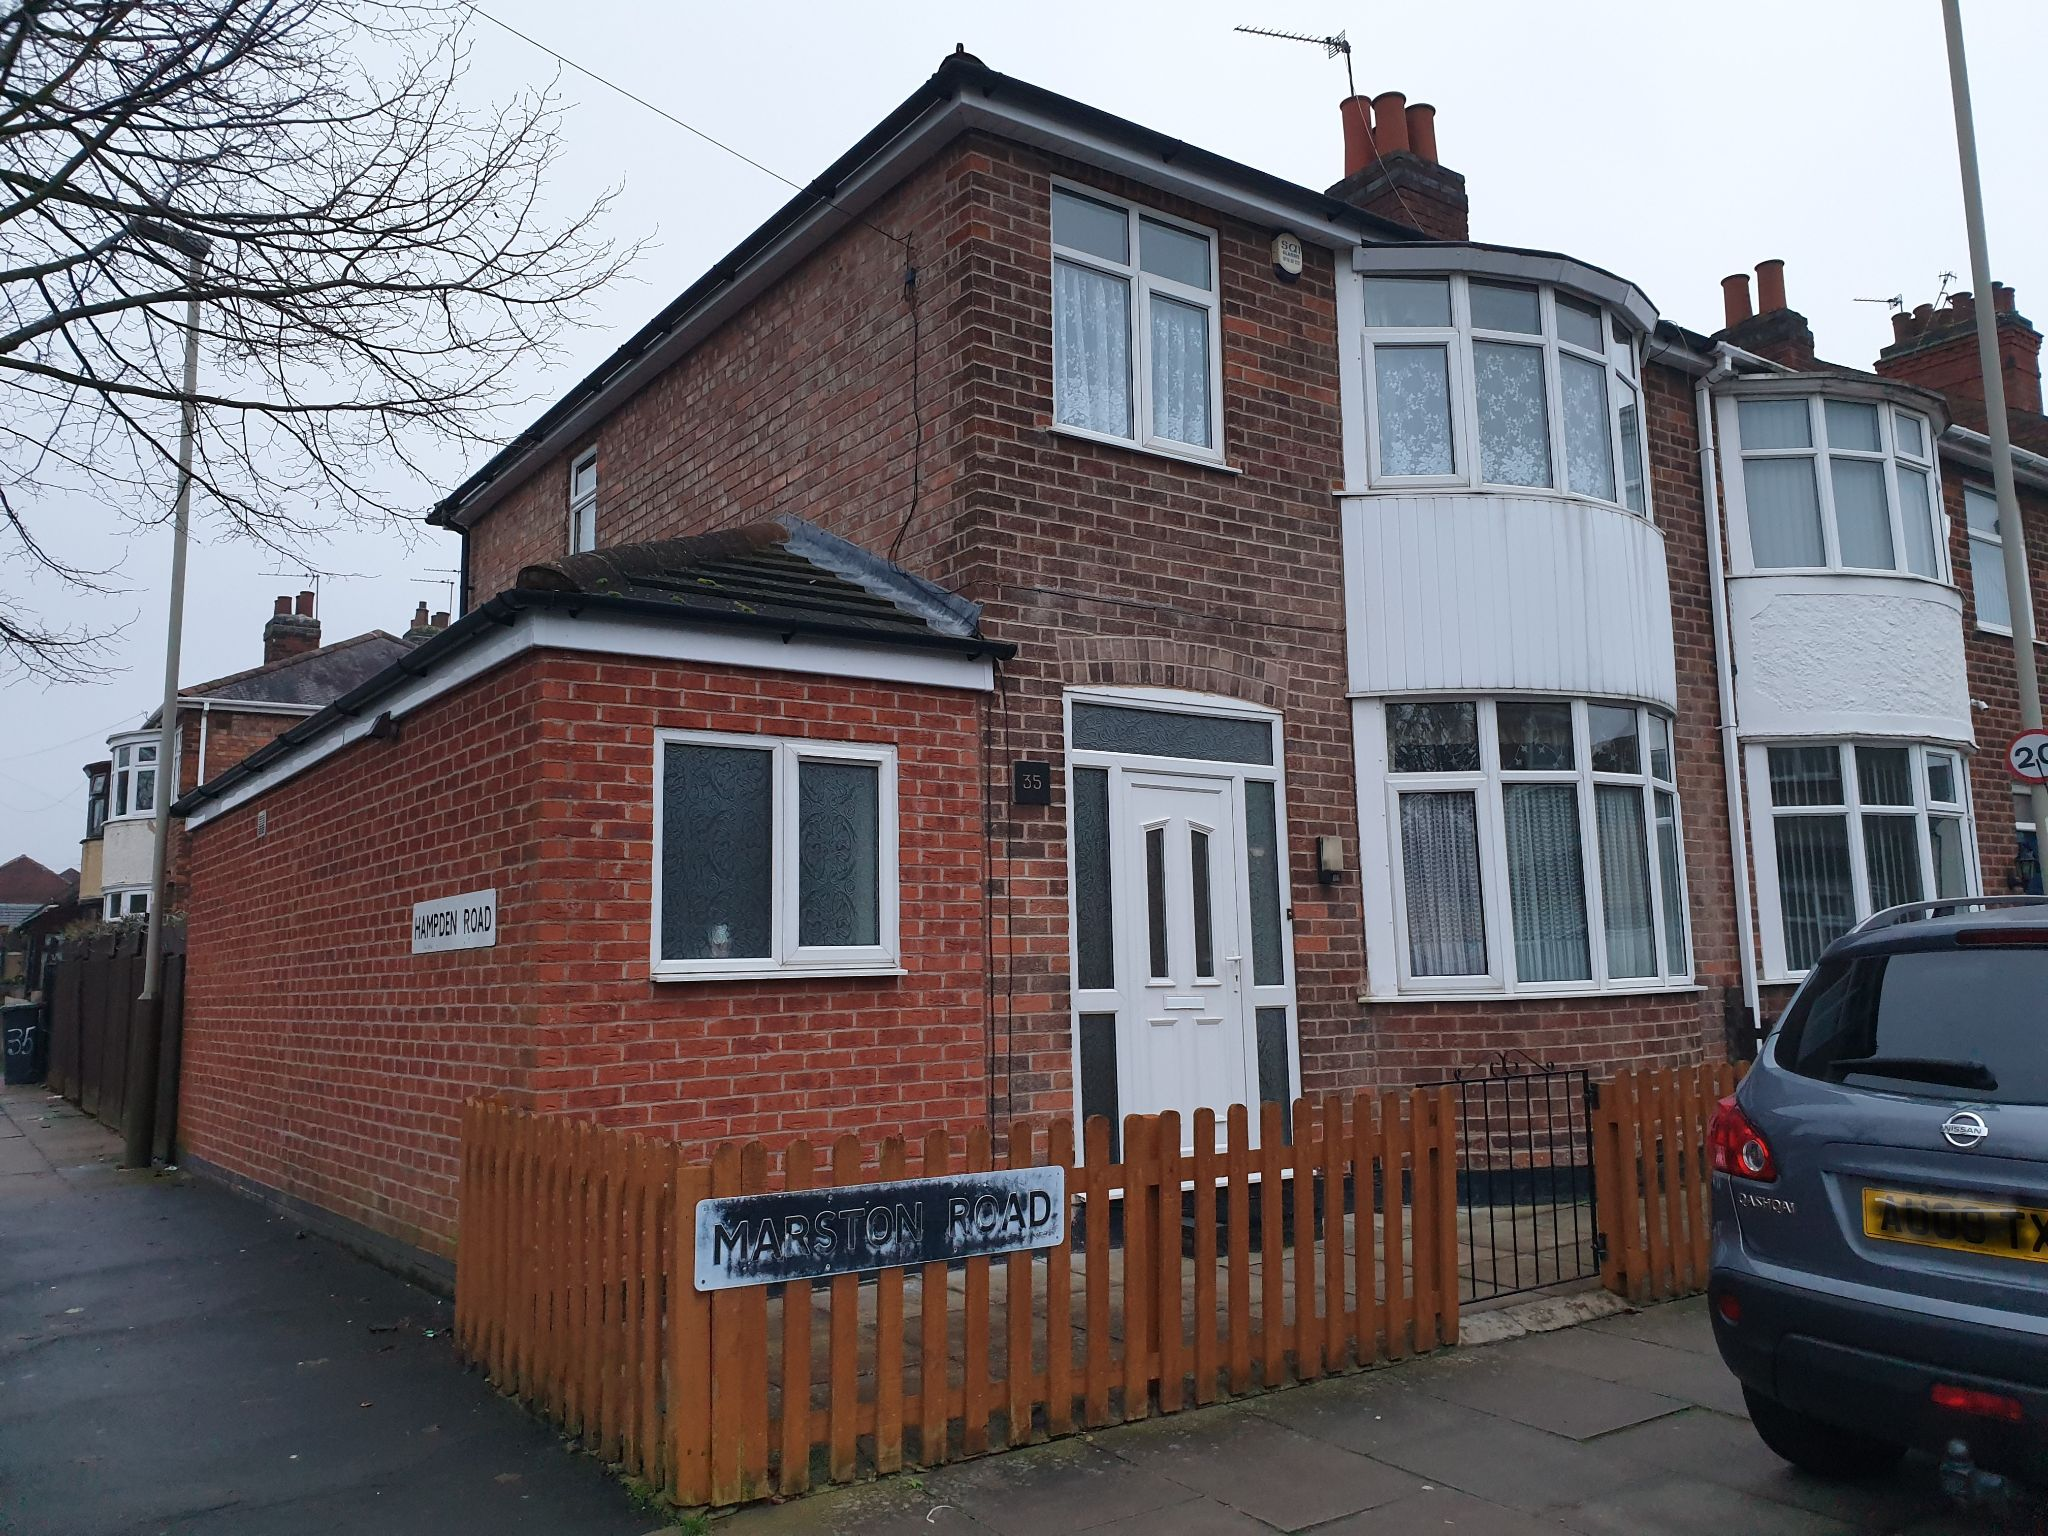 3 Bedroom End Terraced House For Sale 35 Marston Road Main Image